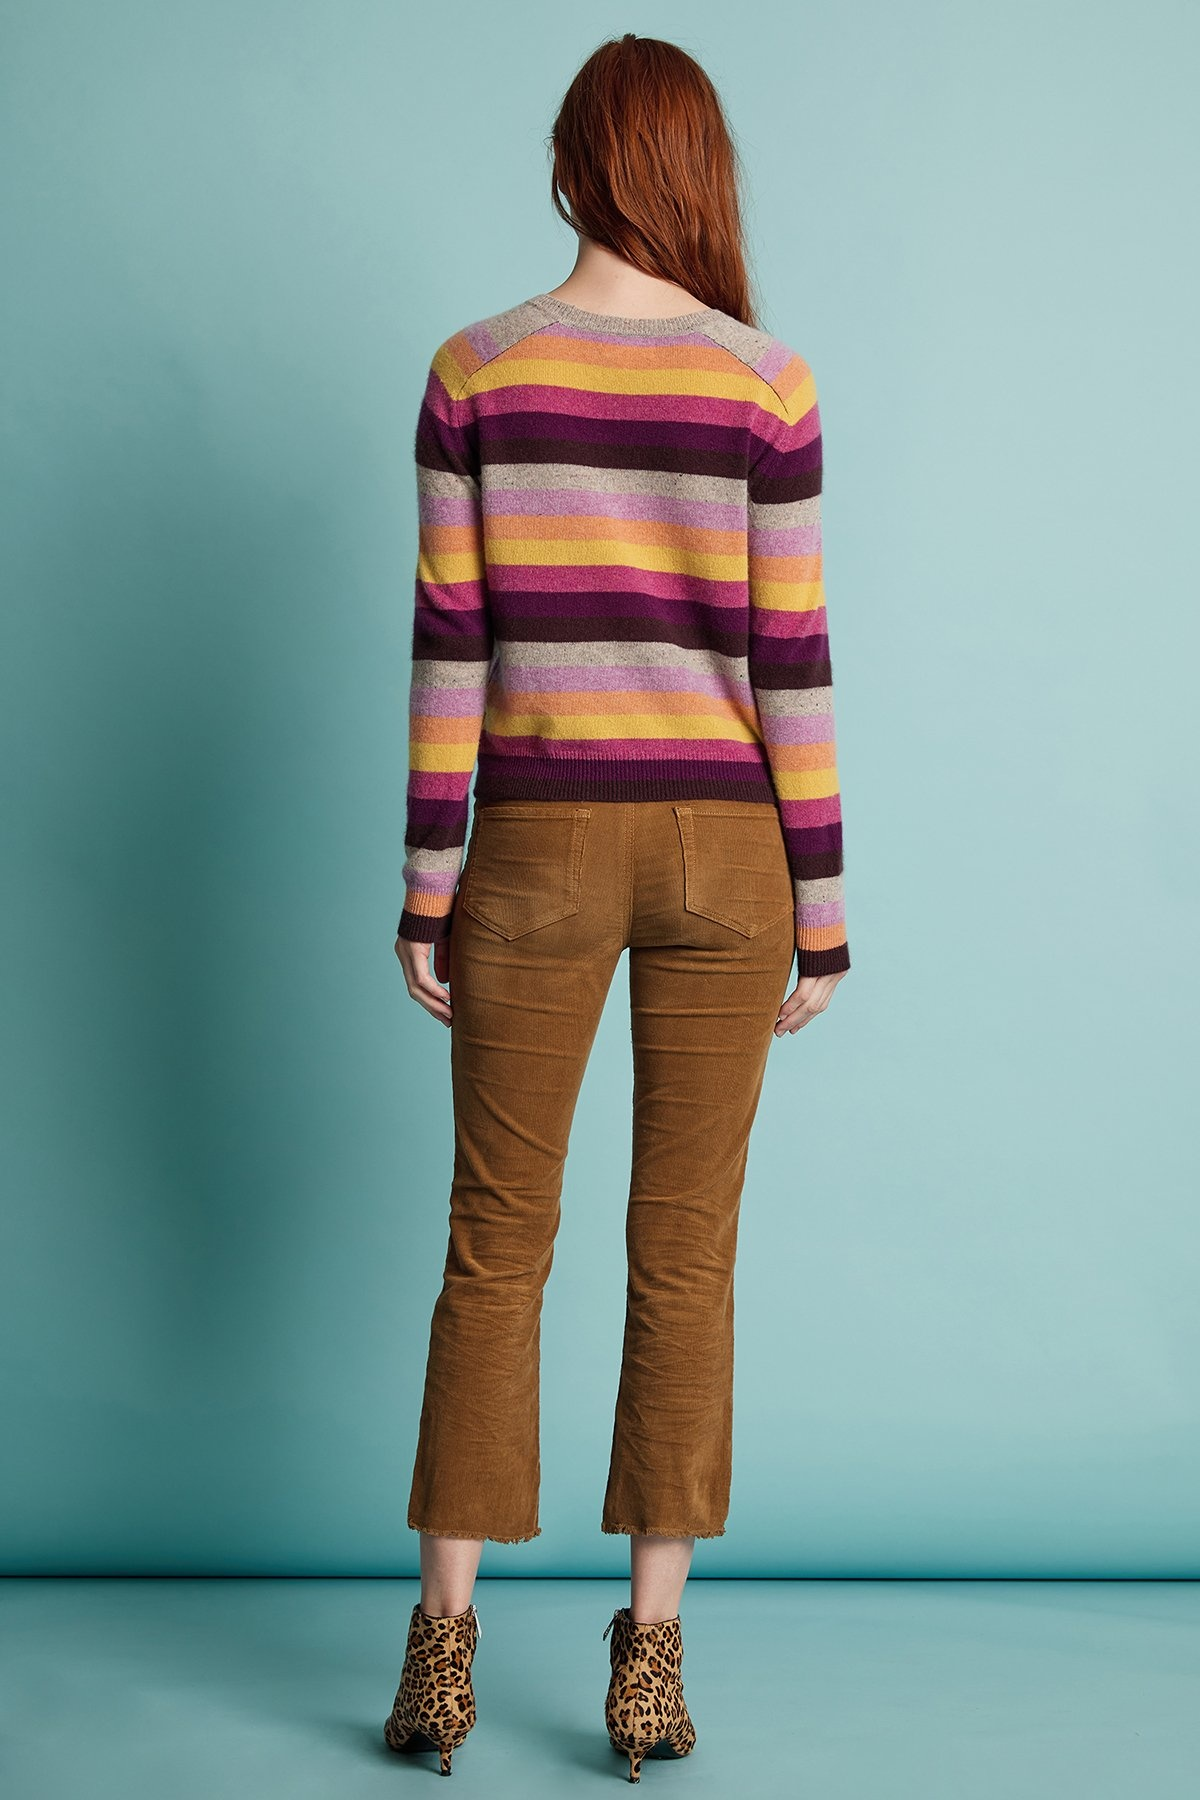 Velvet Multicolor Gold, Purple, and Gray Striped Sweater